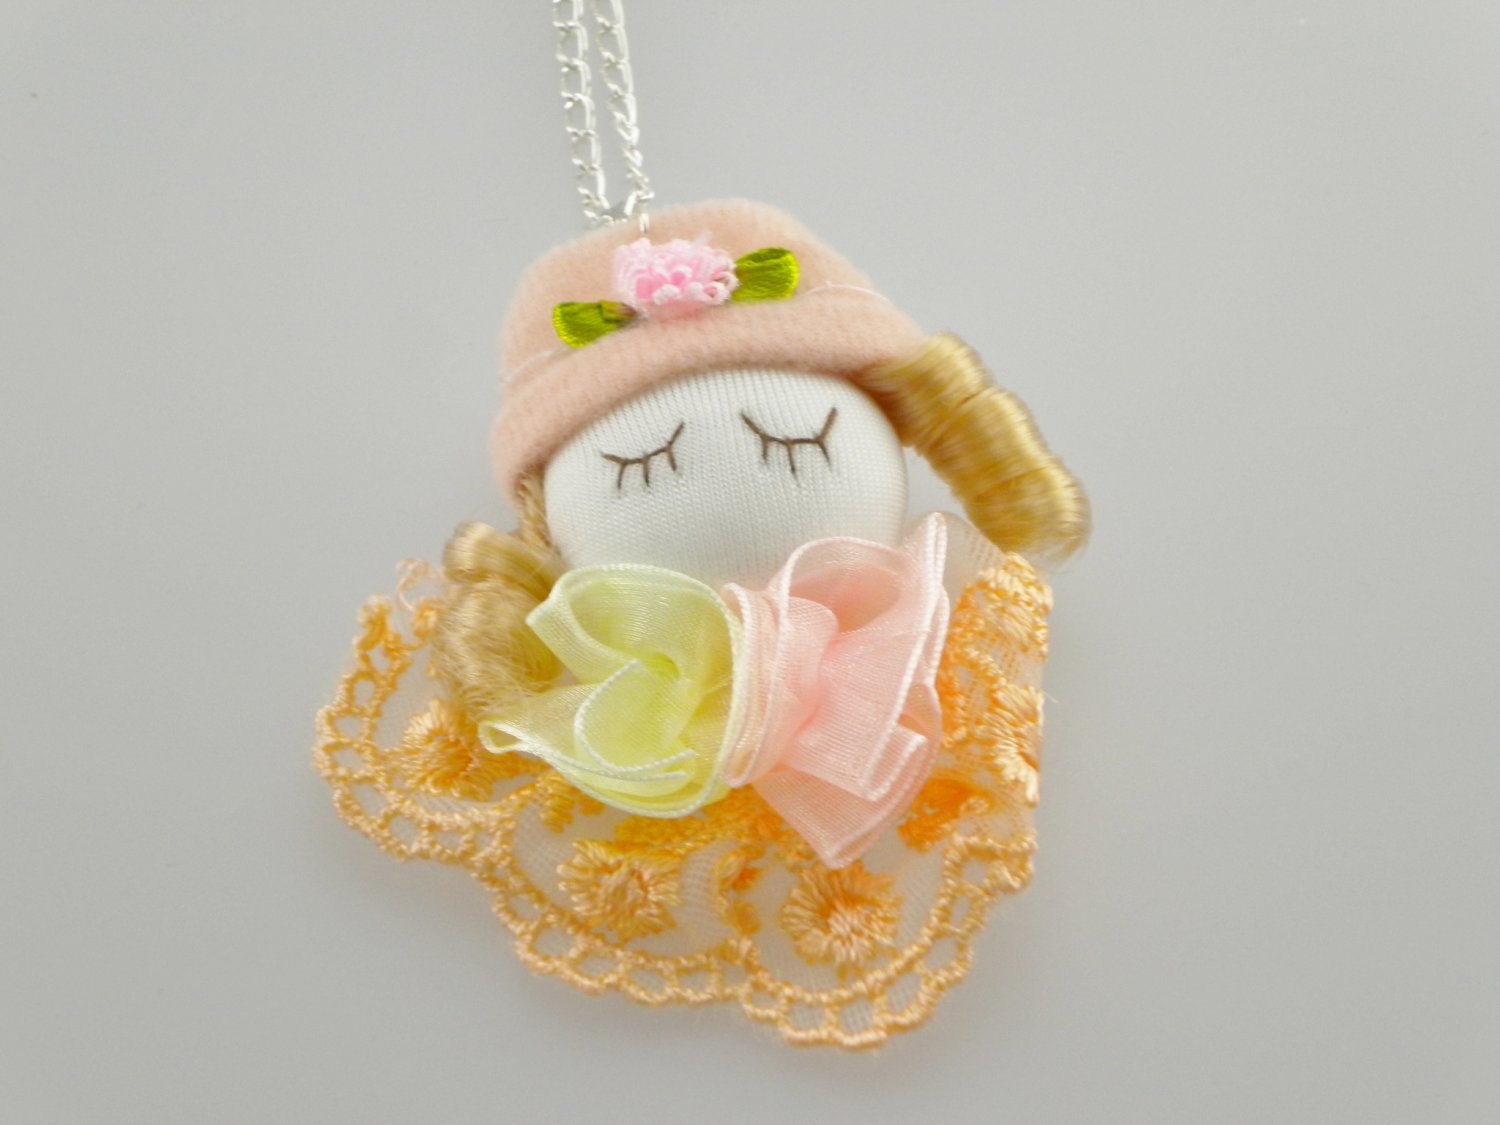 Girl Jewelry Pinky Lace ribbon dolly pendant necklace